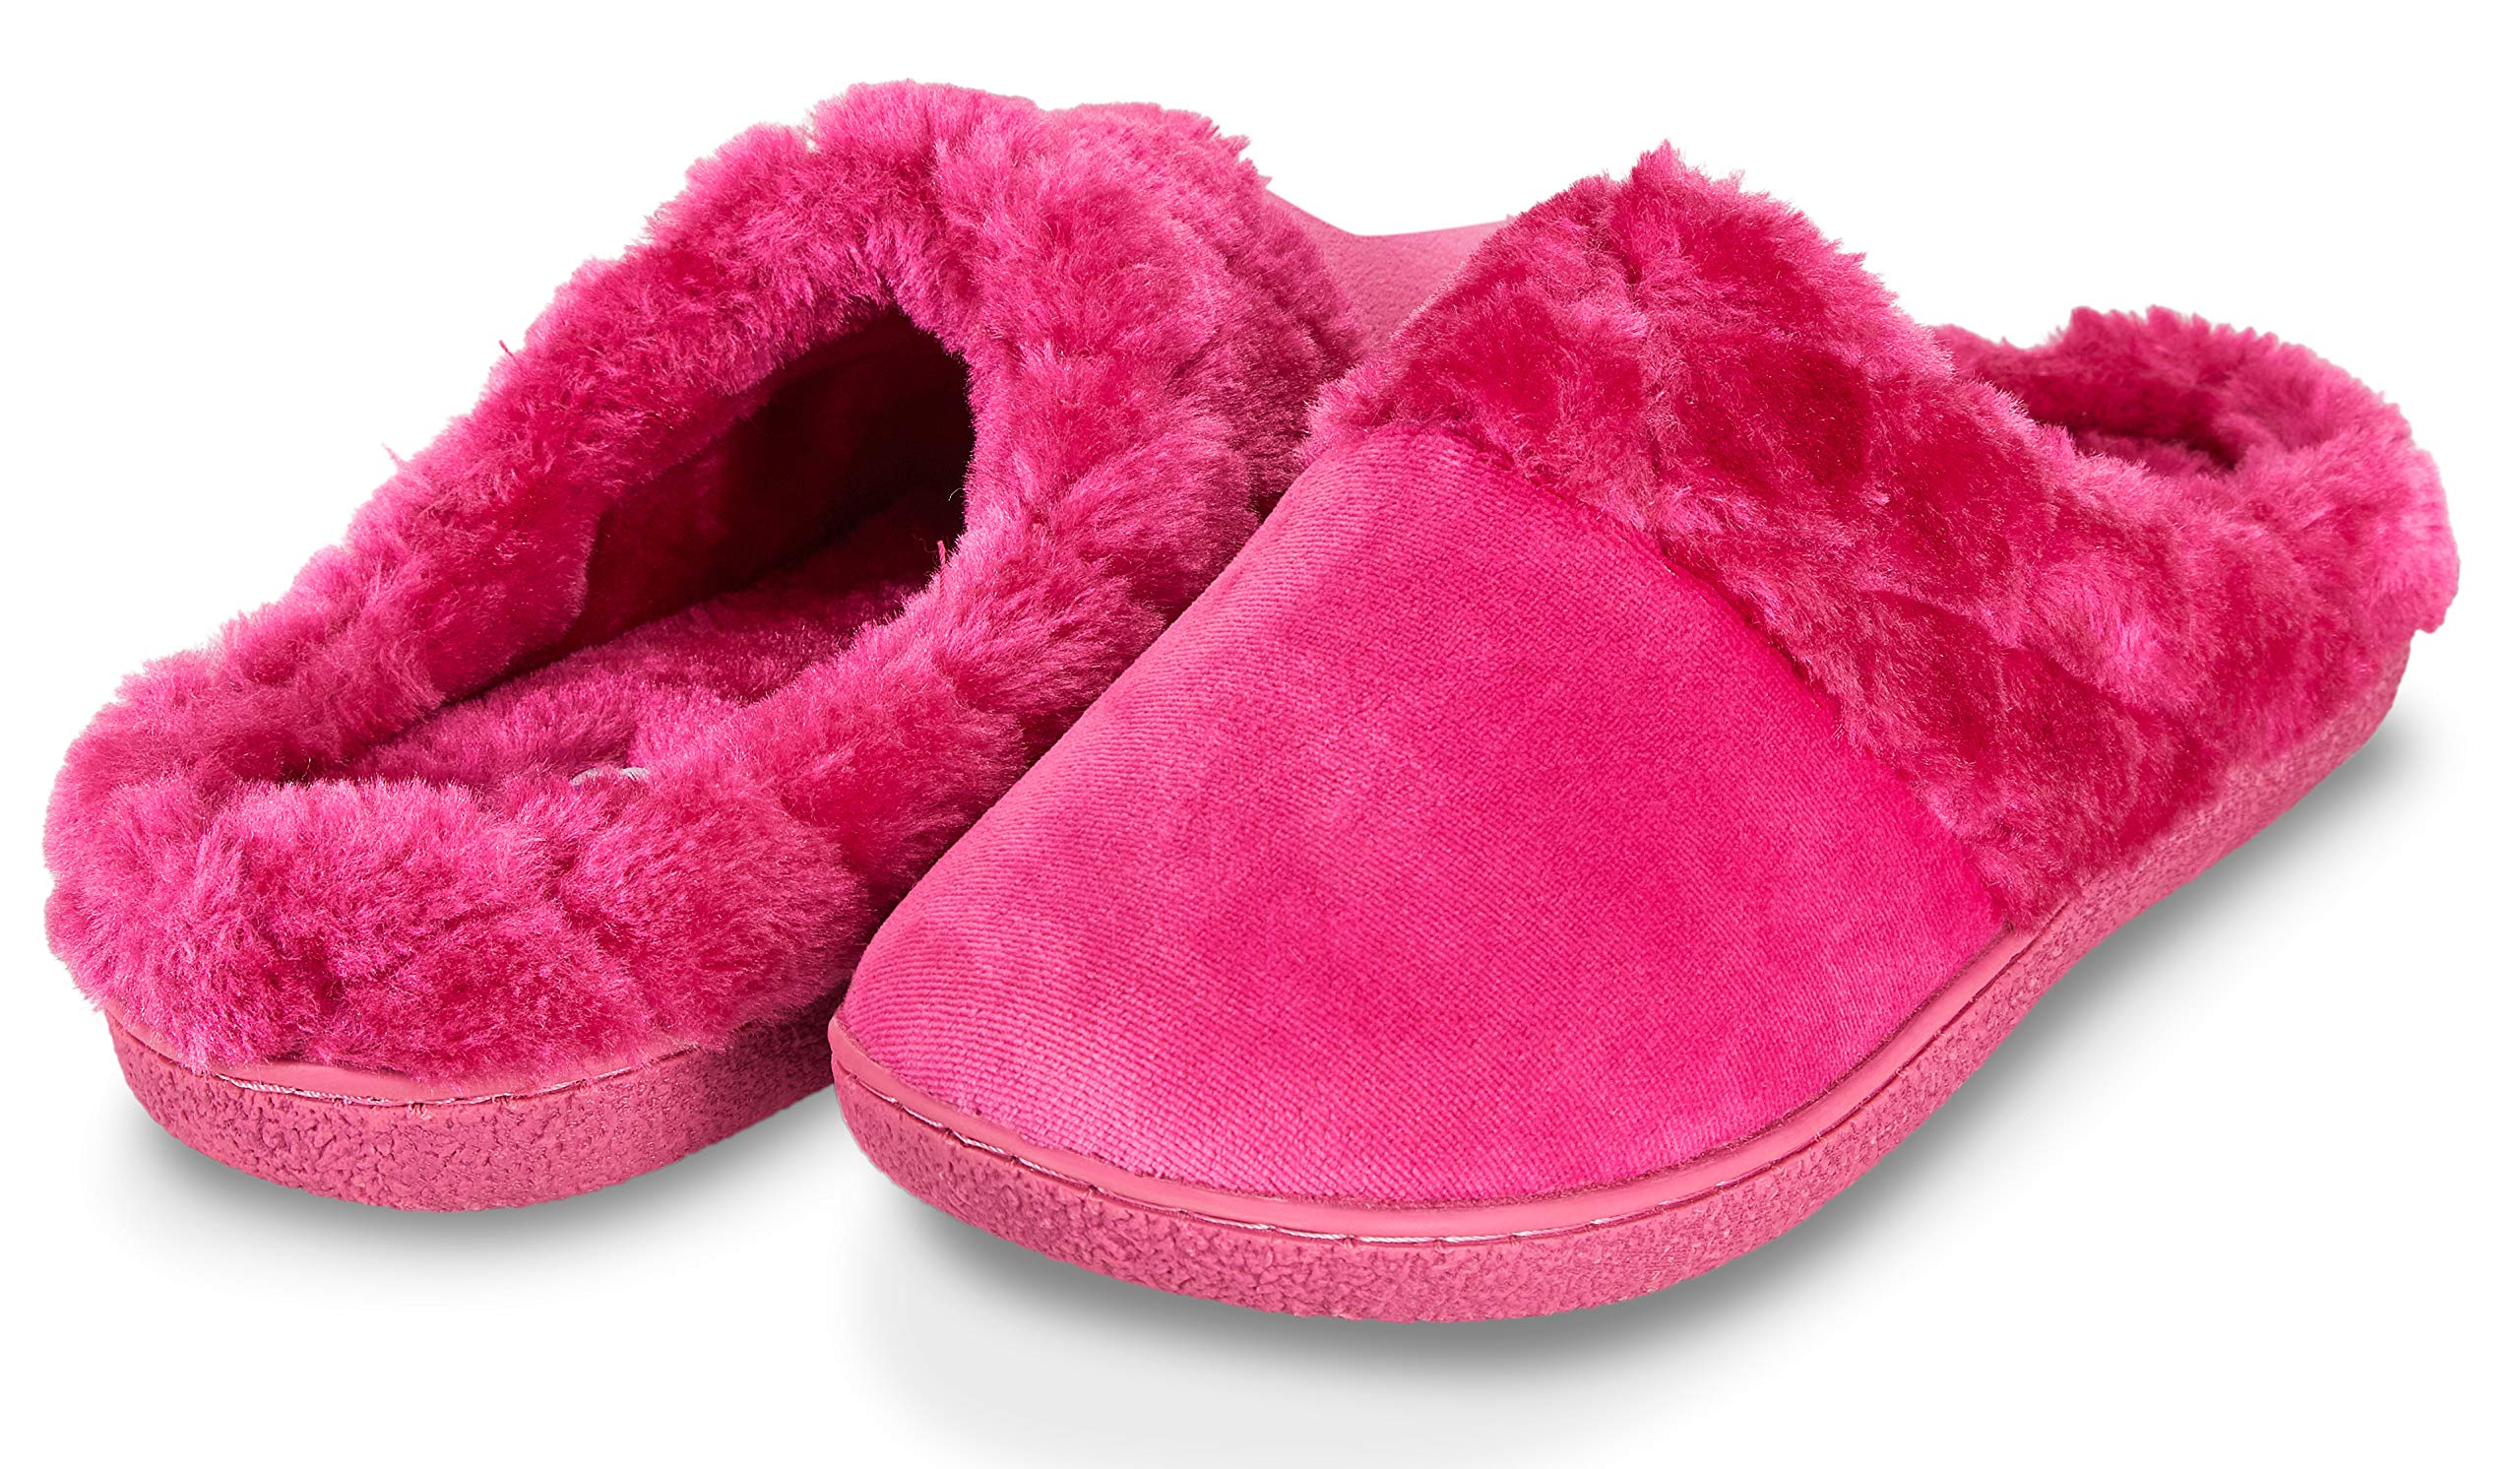 441d0a62560 Floopi Women s Memory Foam Slippers Deluxe Clog Scuff Mule House Slip-Ons  for Indoor   Outdoor Use